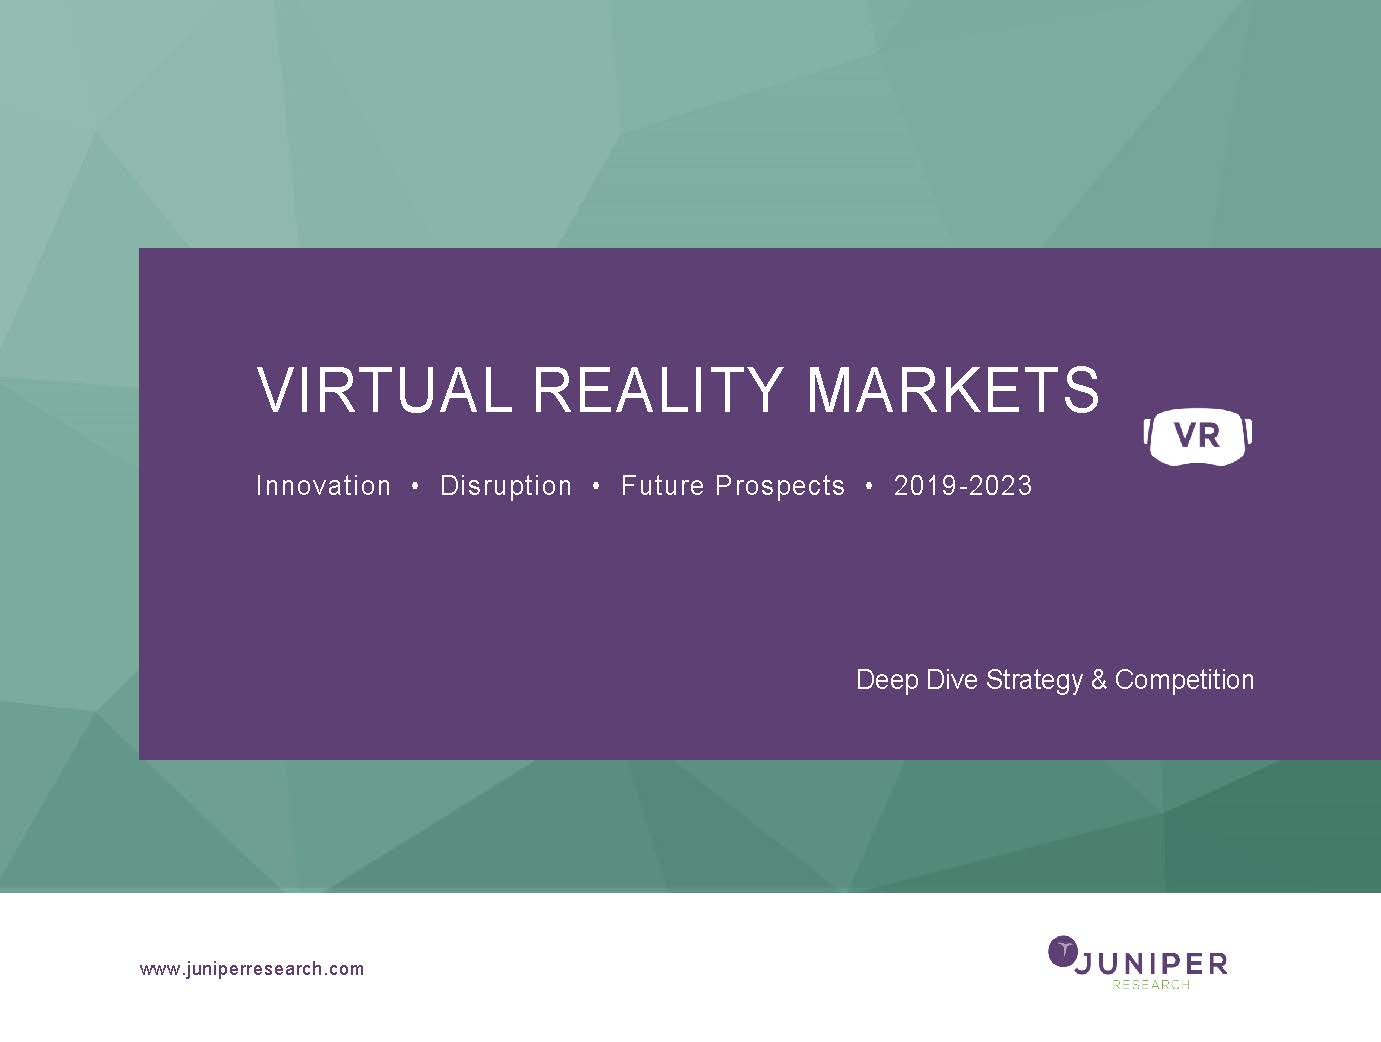 Virtual Reality Markets: Deep Dive Strategy & Competition 2019-2023